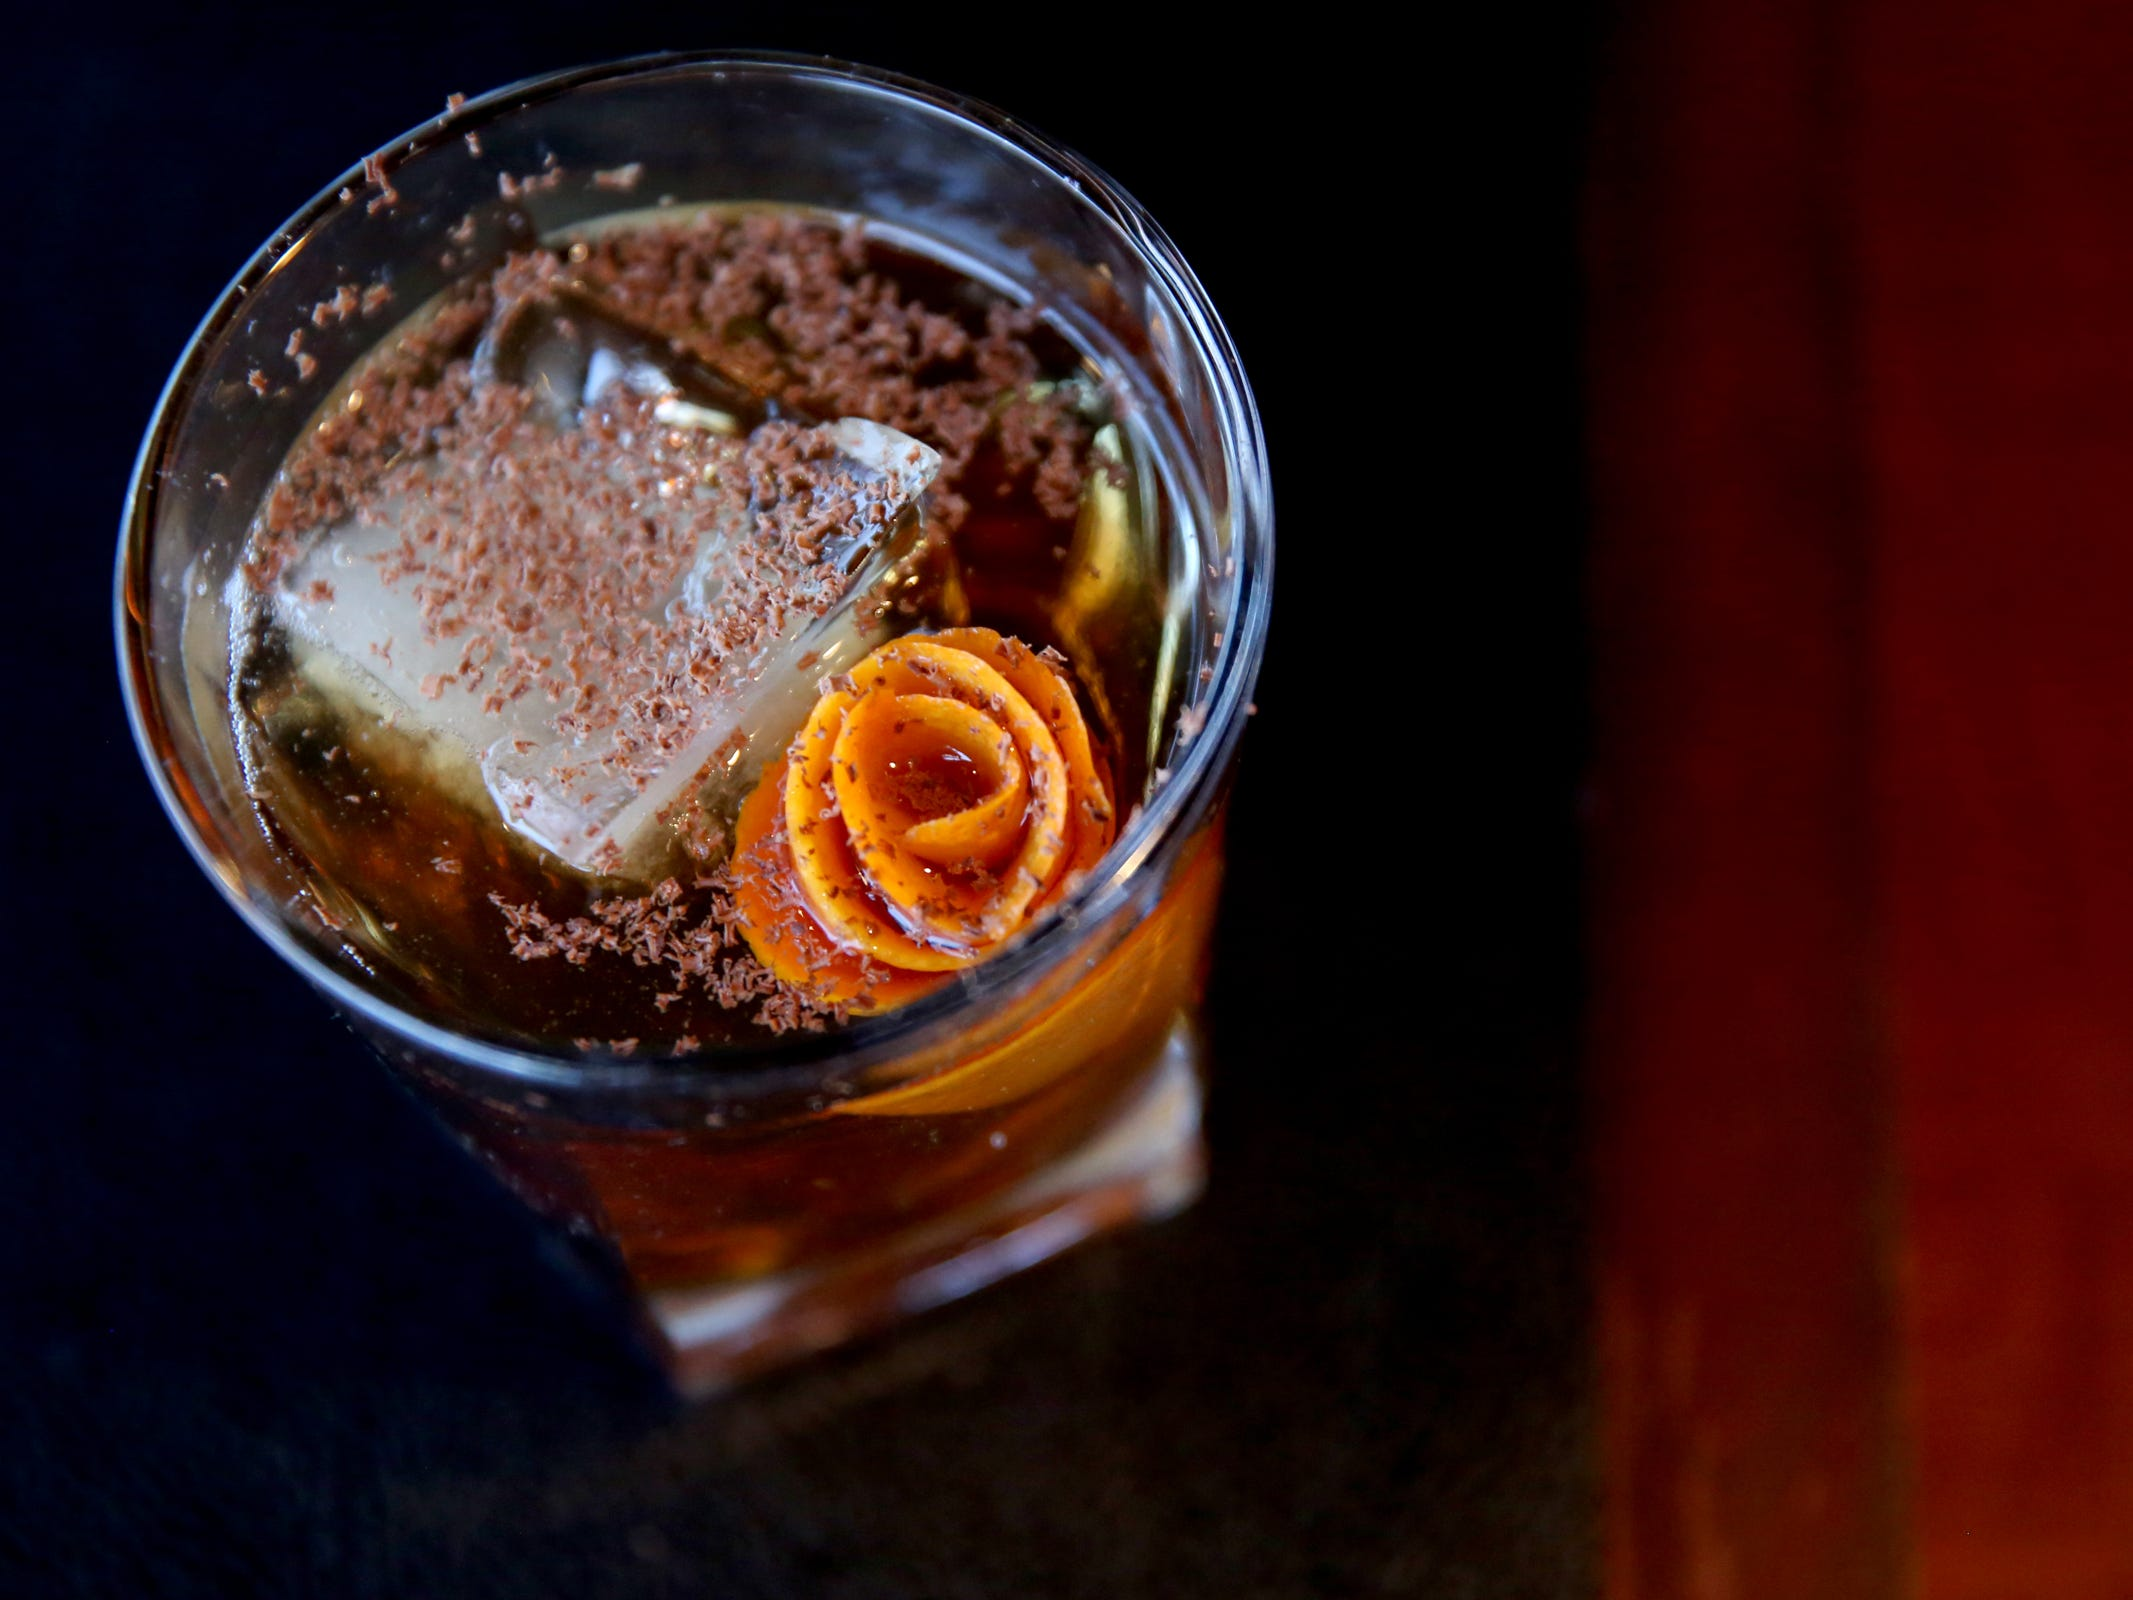 The Chocolate Old Fashioned, with Bushmills, Aztec chocolate bitters, orange peel flower and whiskey syrup at Bentley's Grill in Salem on Friday, Feb. 15, 2019.